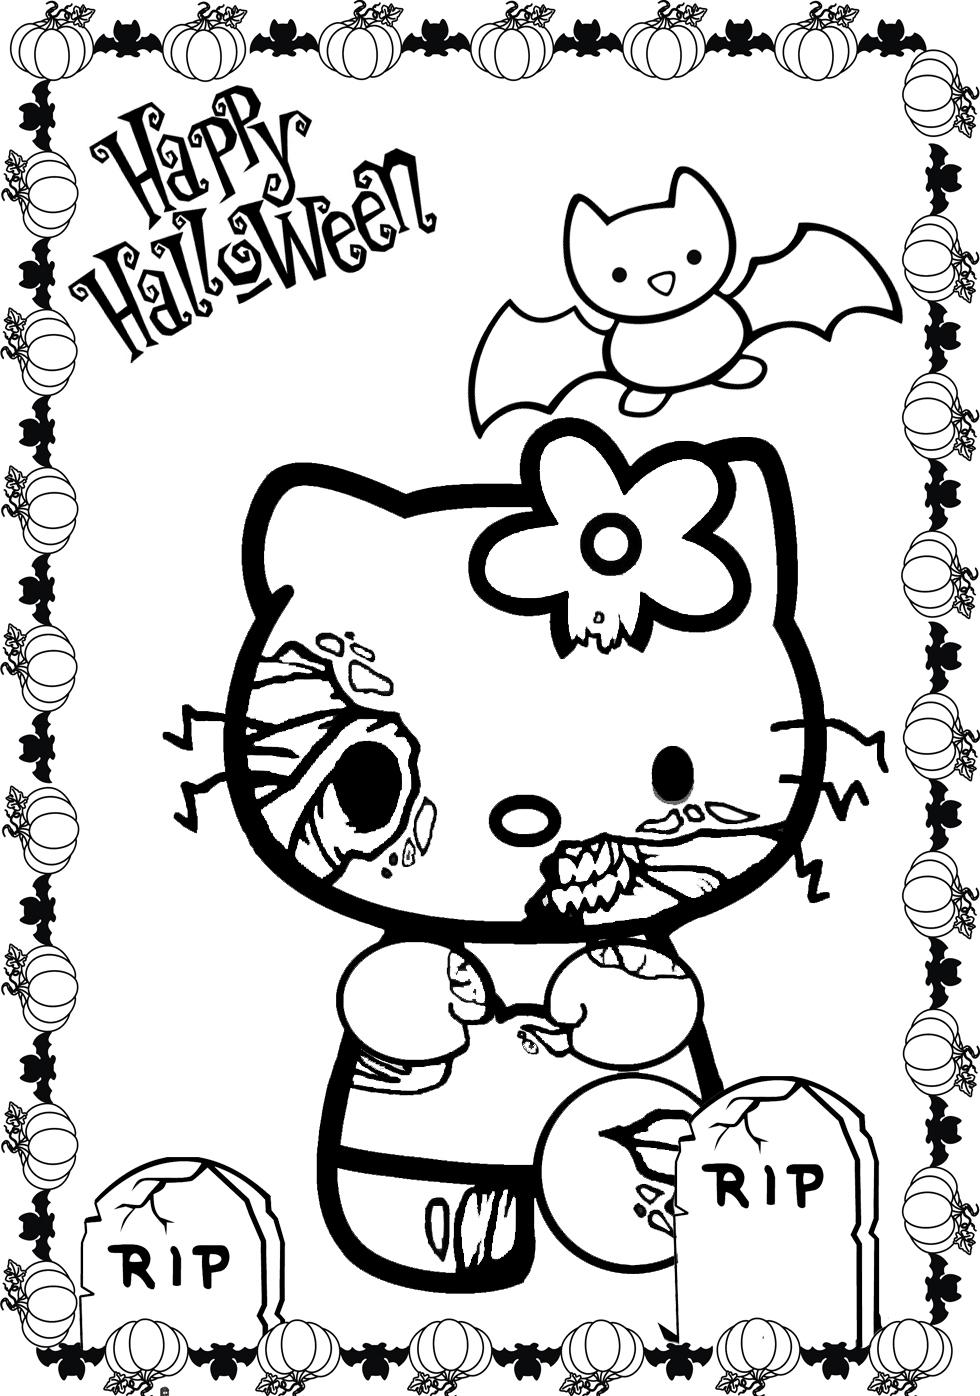 coloring pages halloween scary scary halloween coloring pages inspirational coloring page scary halloween pages coloring